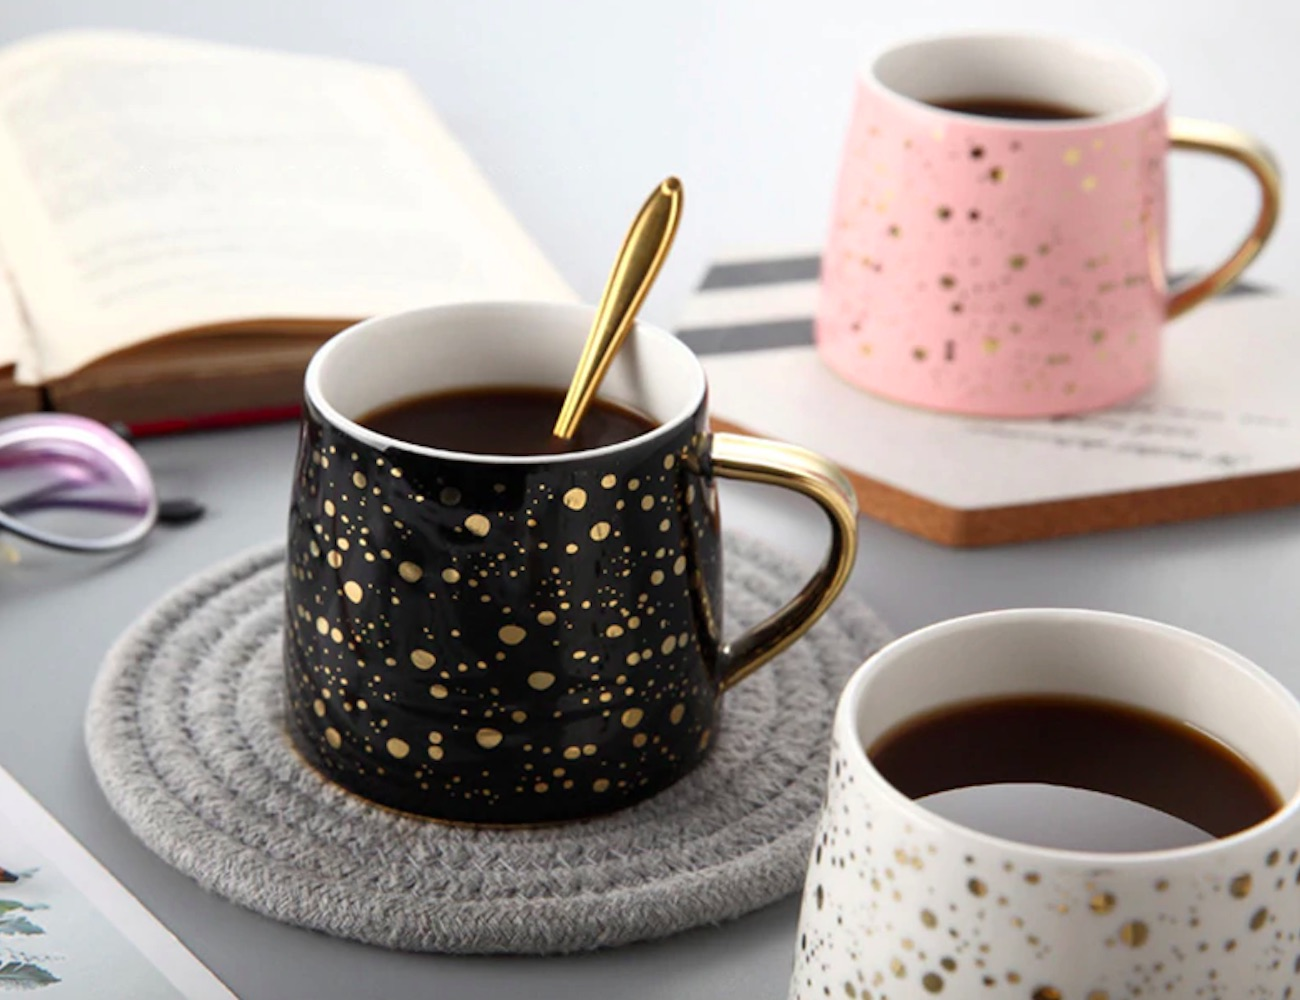 Starry Sky Gold Accented Ceramic Coffee Mug highlights the beauty of the night sky